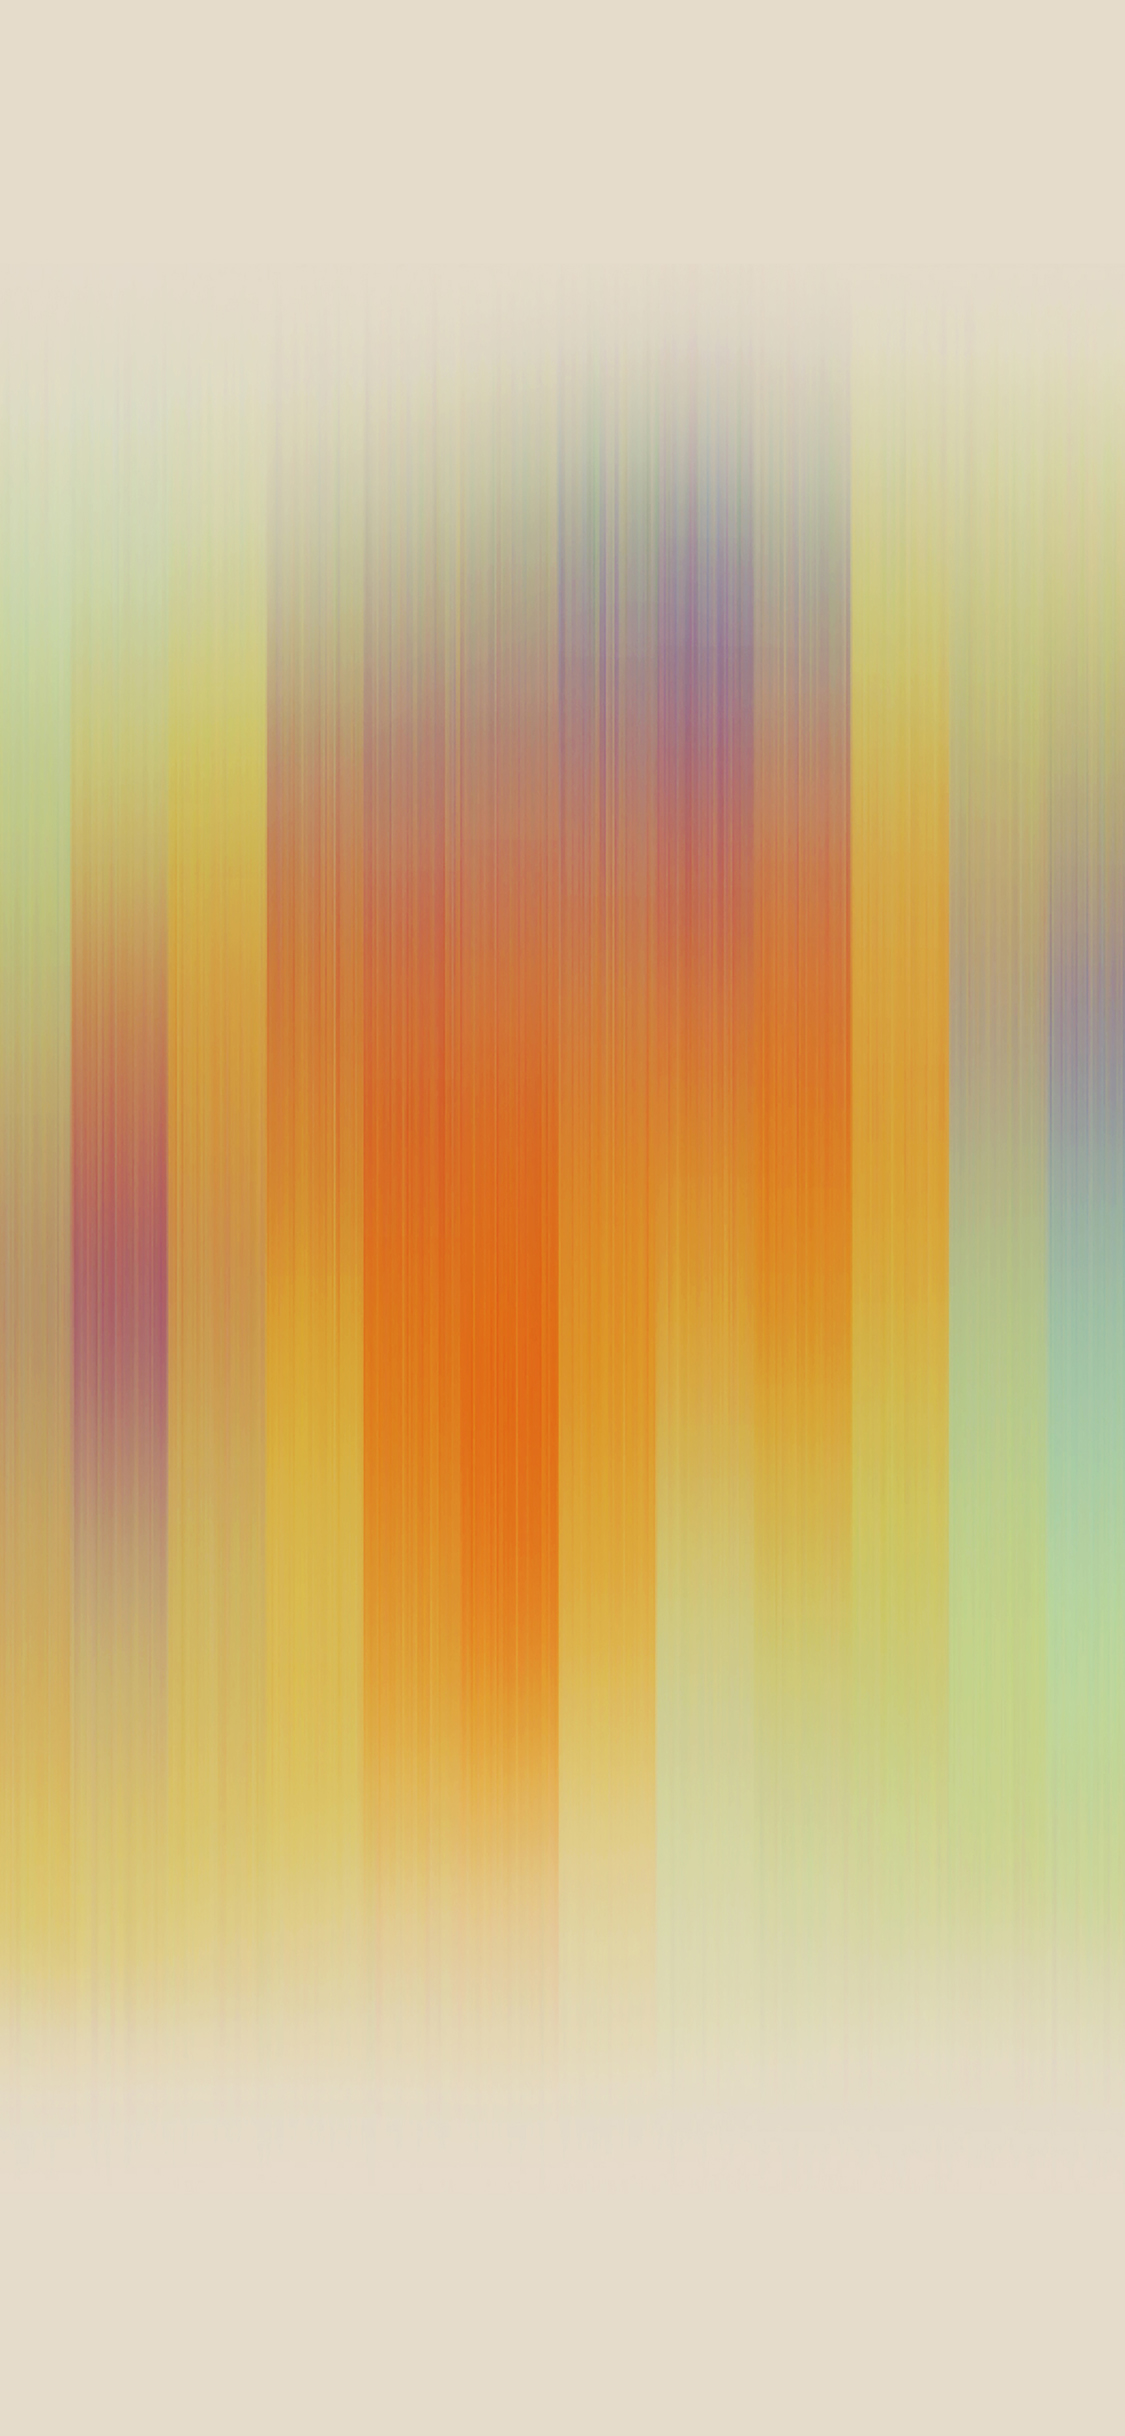 iPhoneXpapers.com-Apple-iPhone-wallpaper-vf19-digital-lines-gold-perspective-abstract-pattern